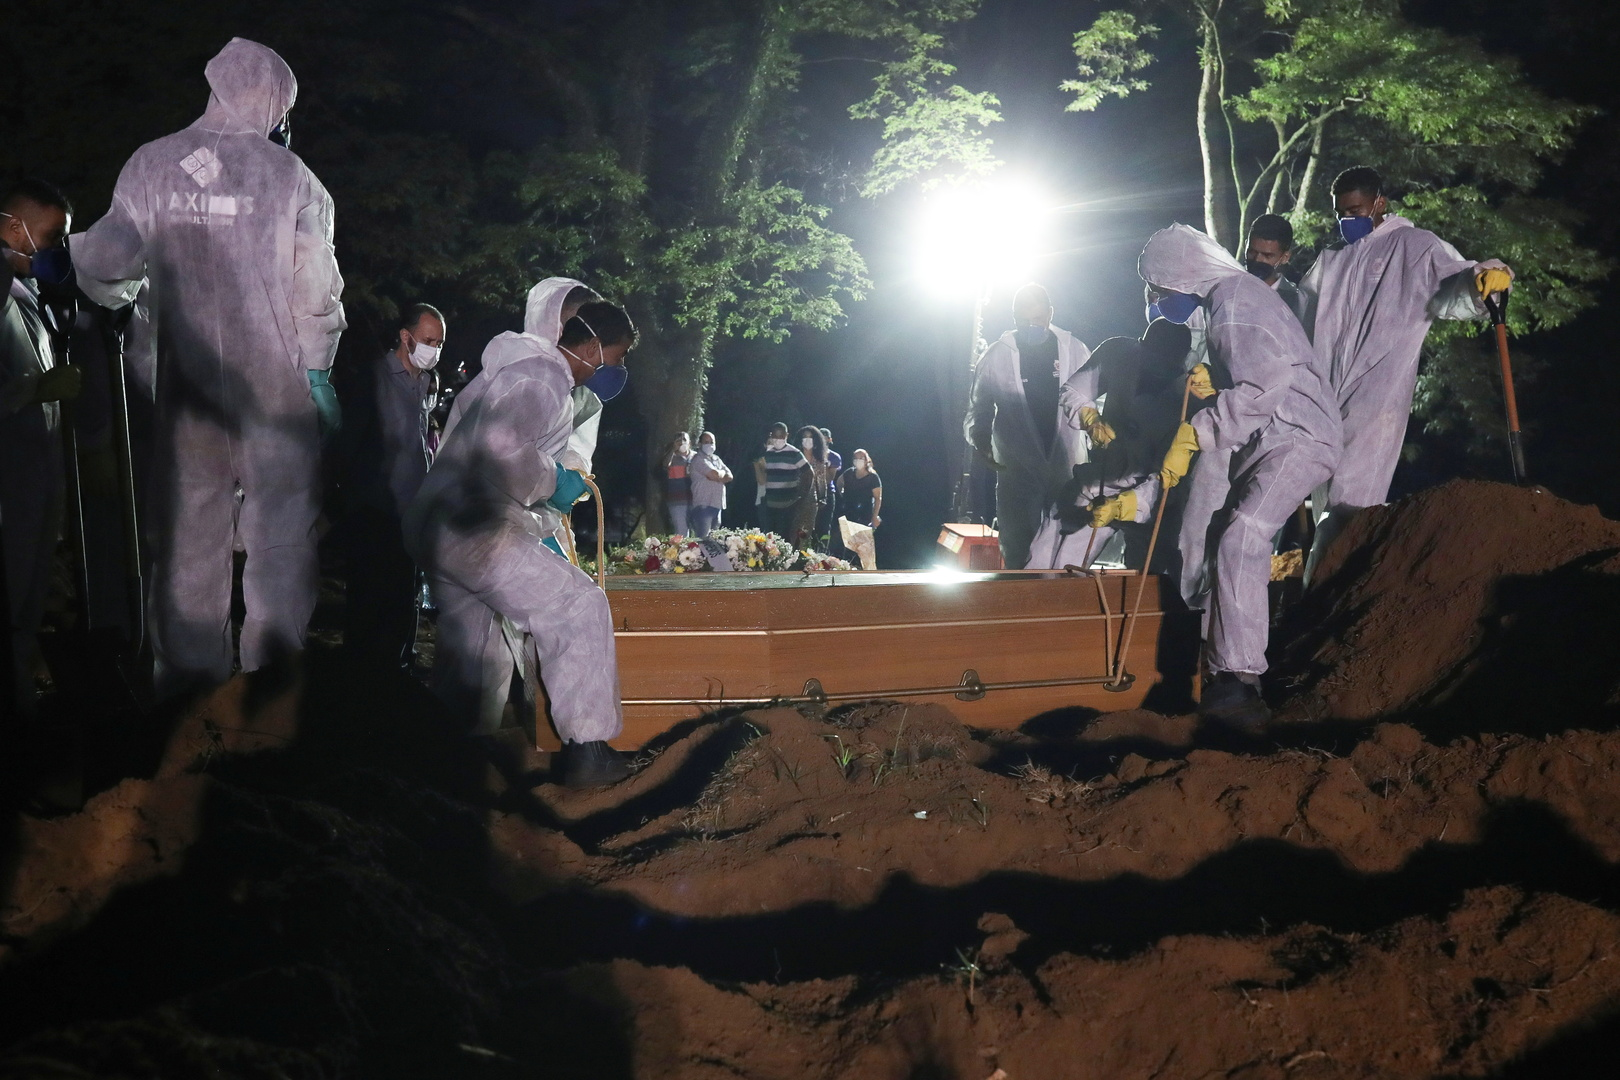 Brazil sets a new record for Corona deaths